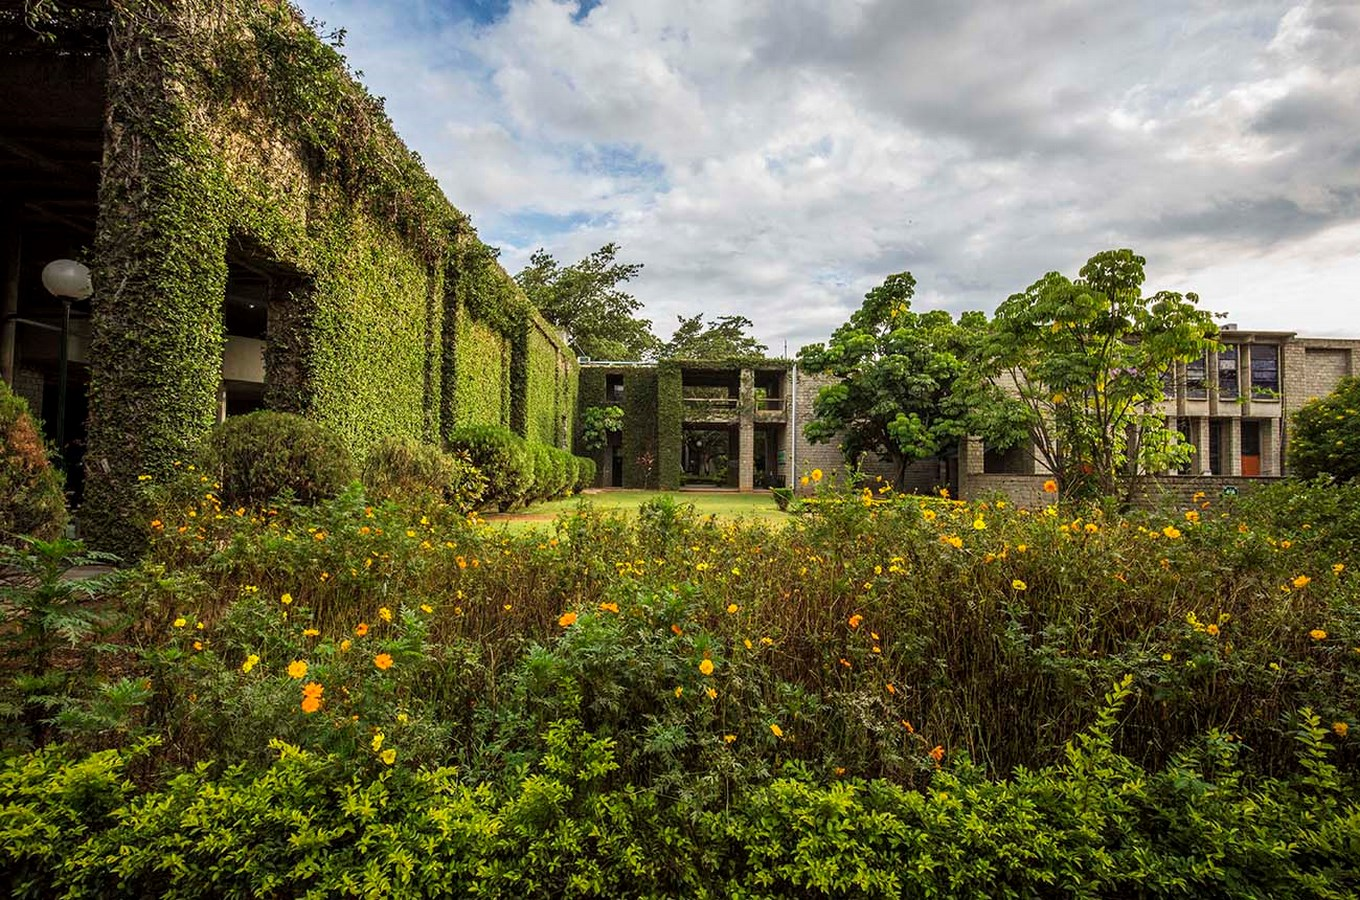 15 Works of B. V. Doshi Every Architect should visit - Indian Institute of Management, India